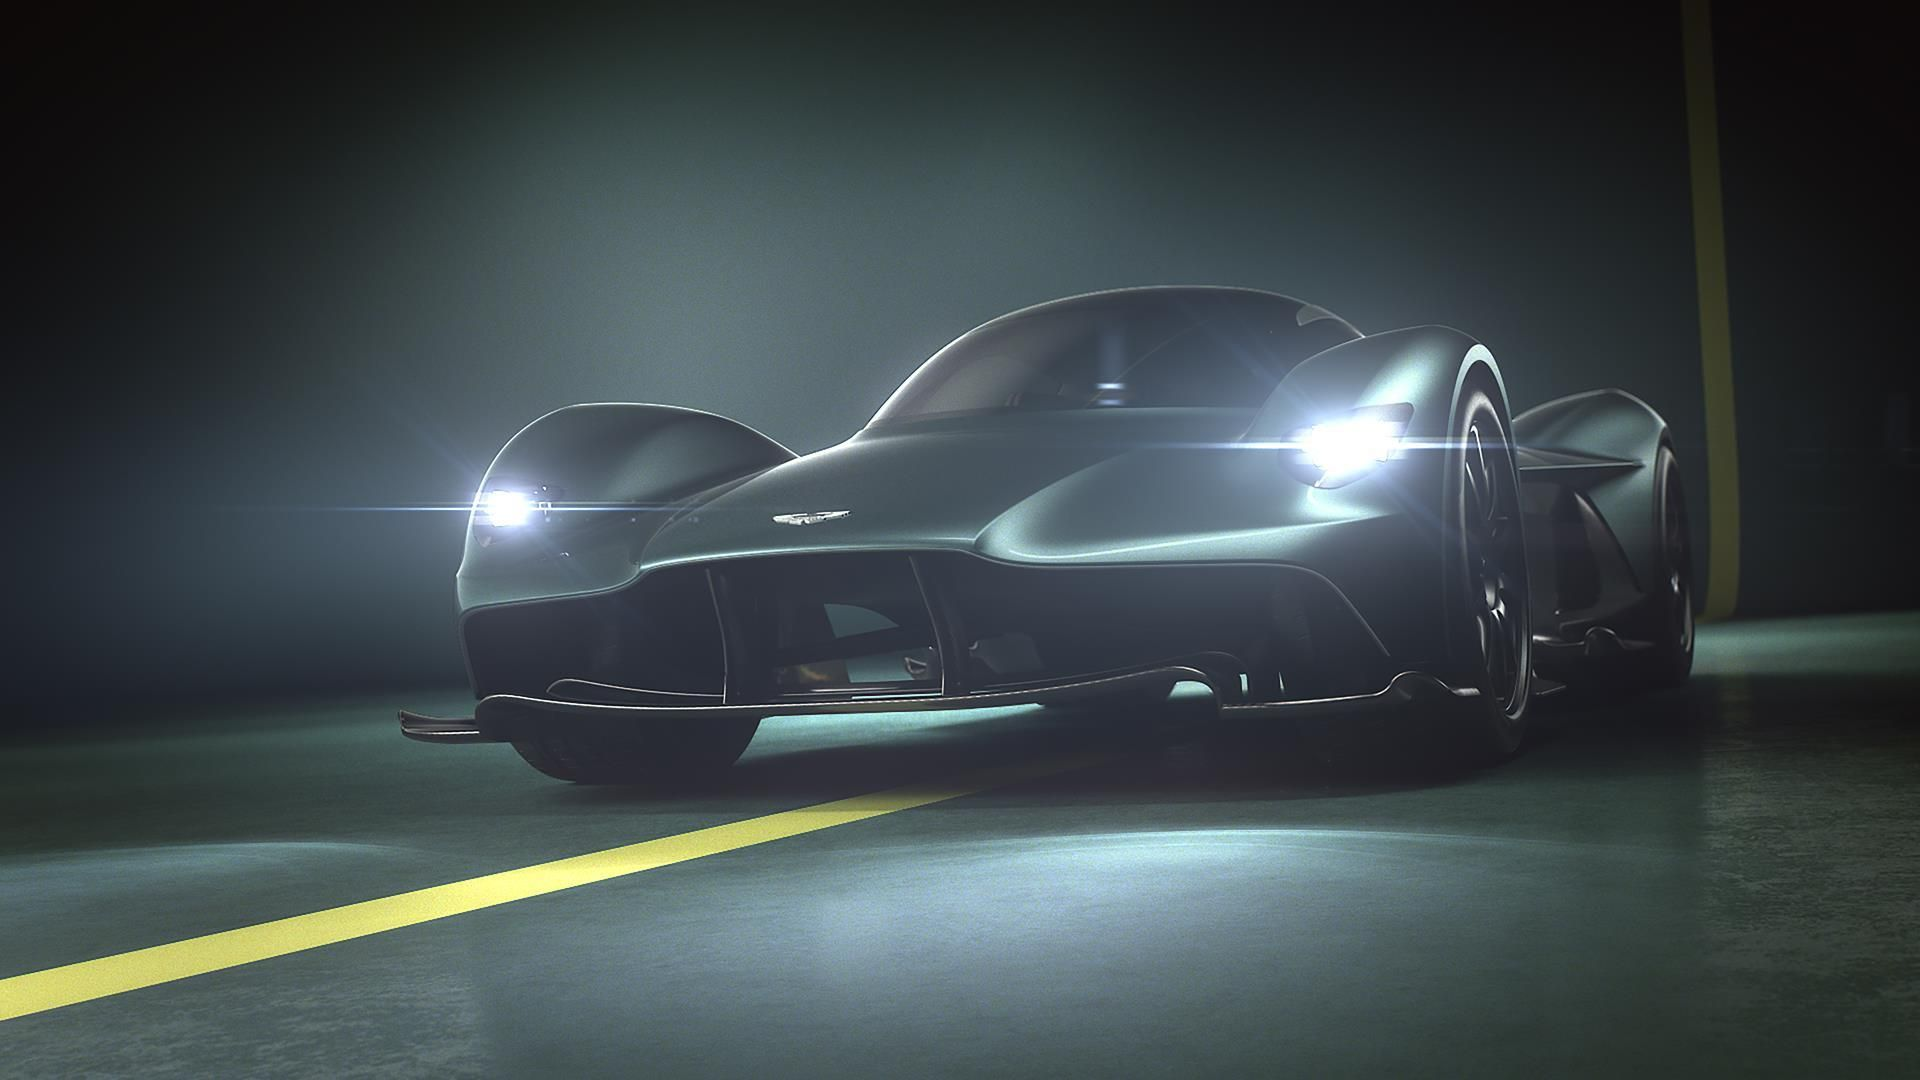 2017 Aston Martin Valkyrie Wallpapers and Image Gallery